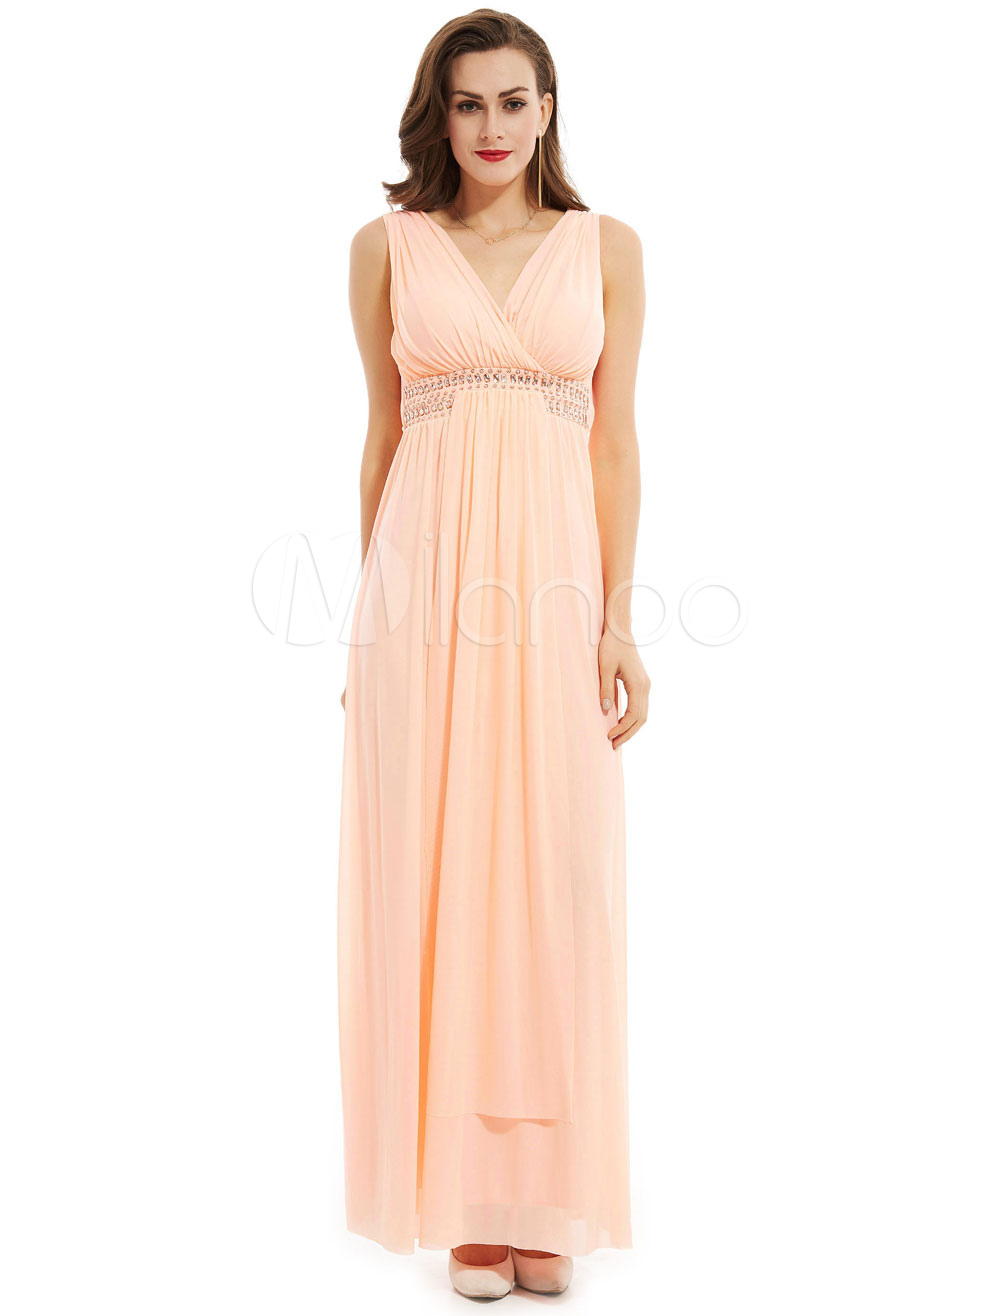 Buy Long Prom Dresses V Neck Pleated Chiffon Peach Beading Waist Formal Party Dress for $65.99 in Milanoo store